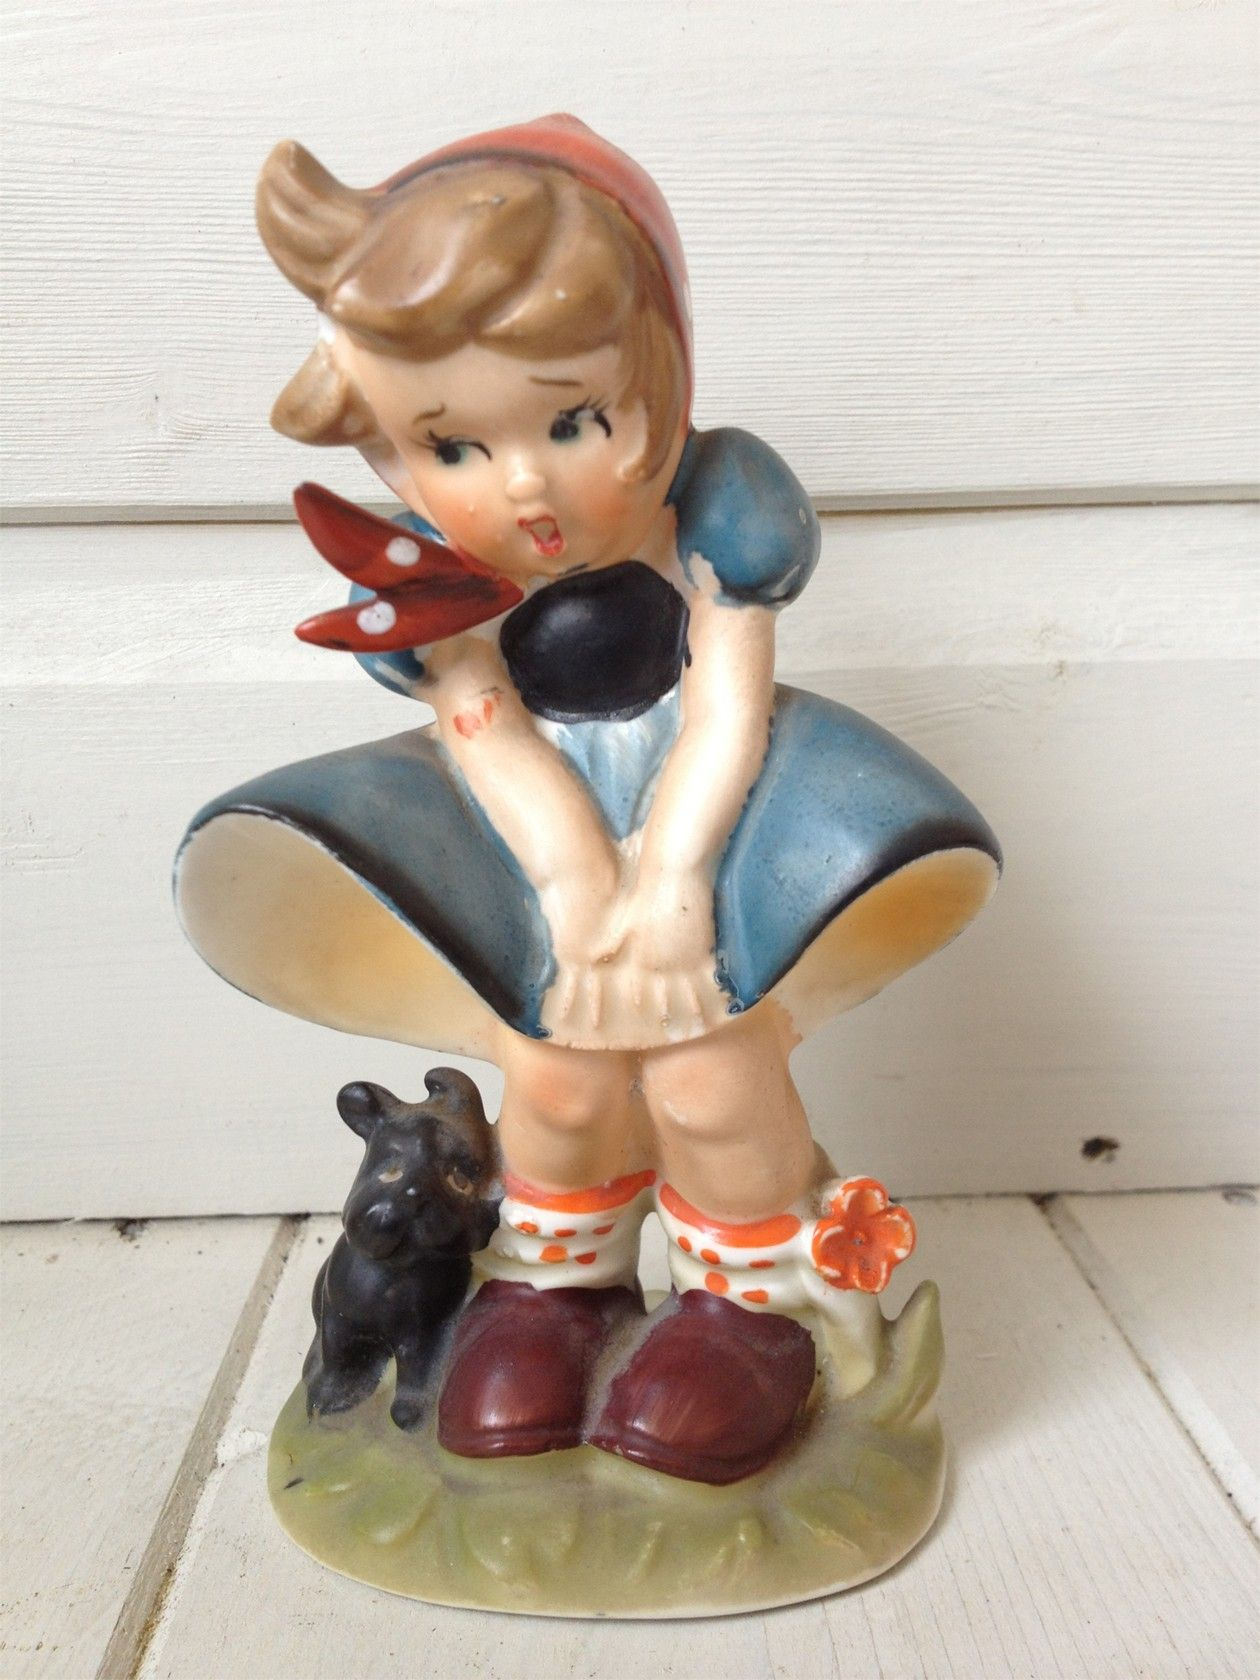 VINTAGE 1950S ?HUMMEL / GOEBEL FIGURINE OF GIRL WITH DOG